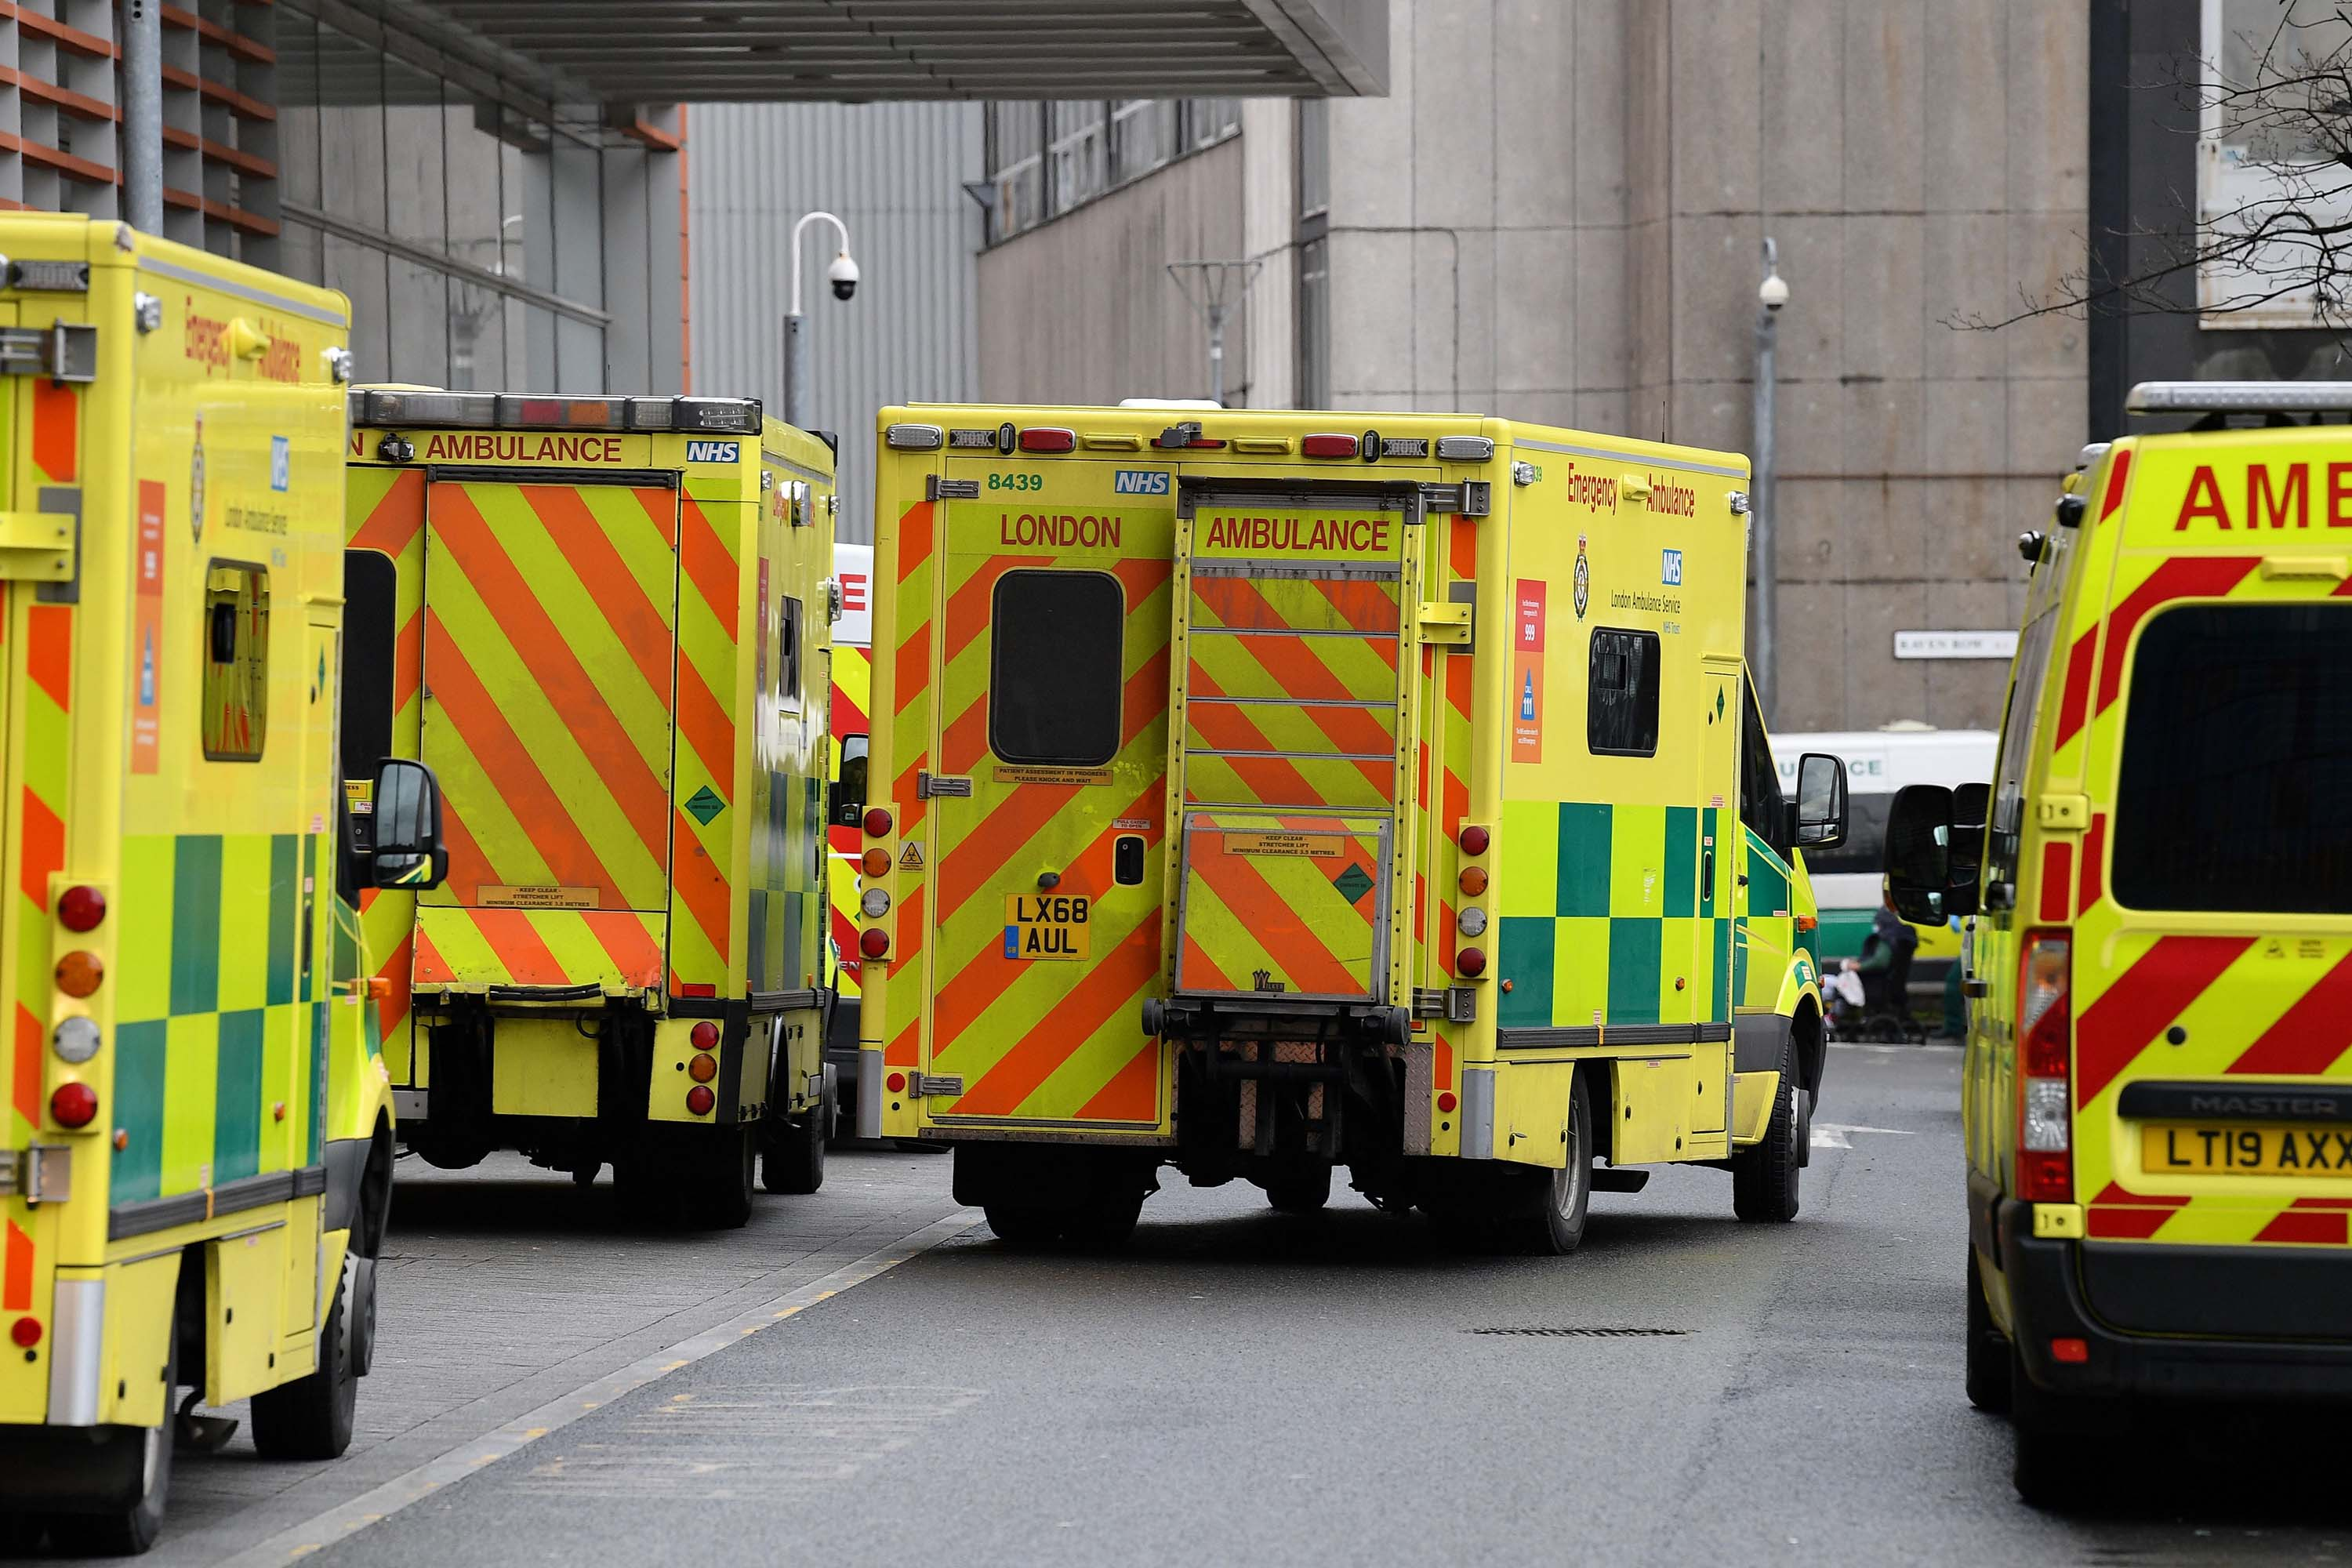 Ambulances are seen parked outside the Royal London Hospital in London, on January 28.